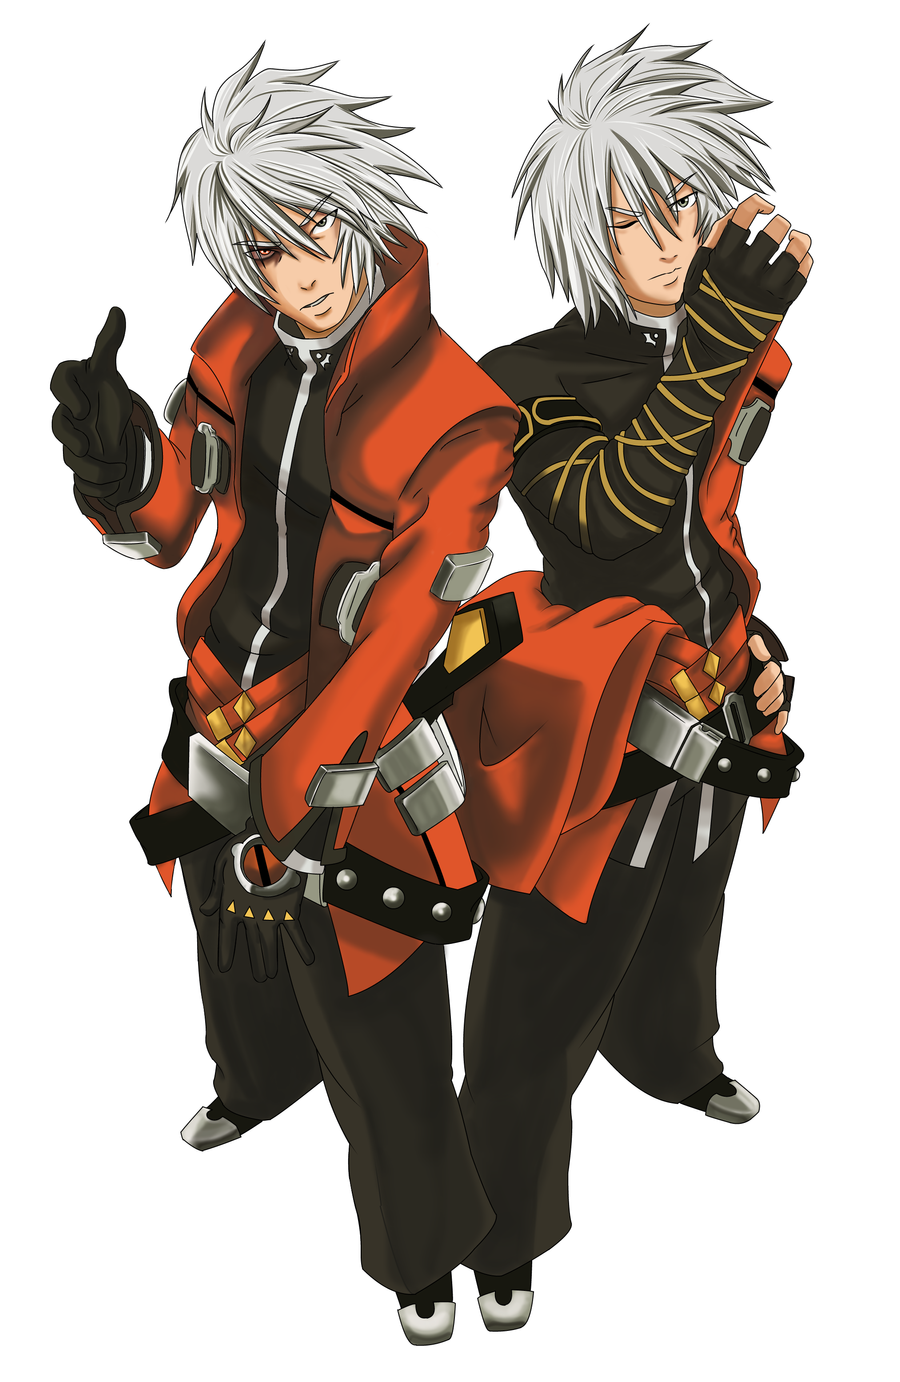 Art Ragna Images - Reverse Search